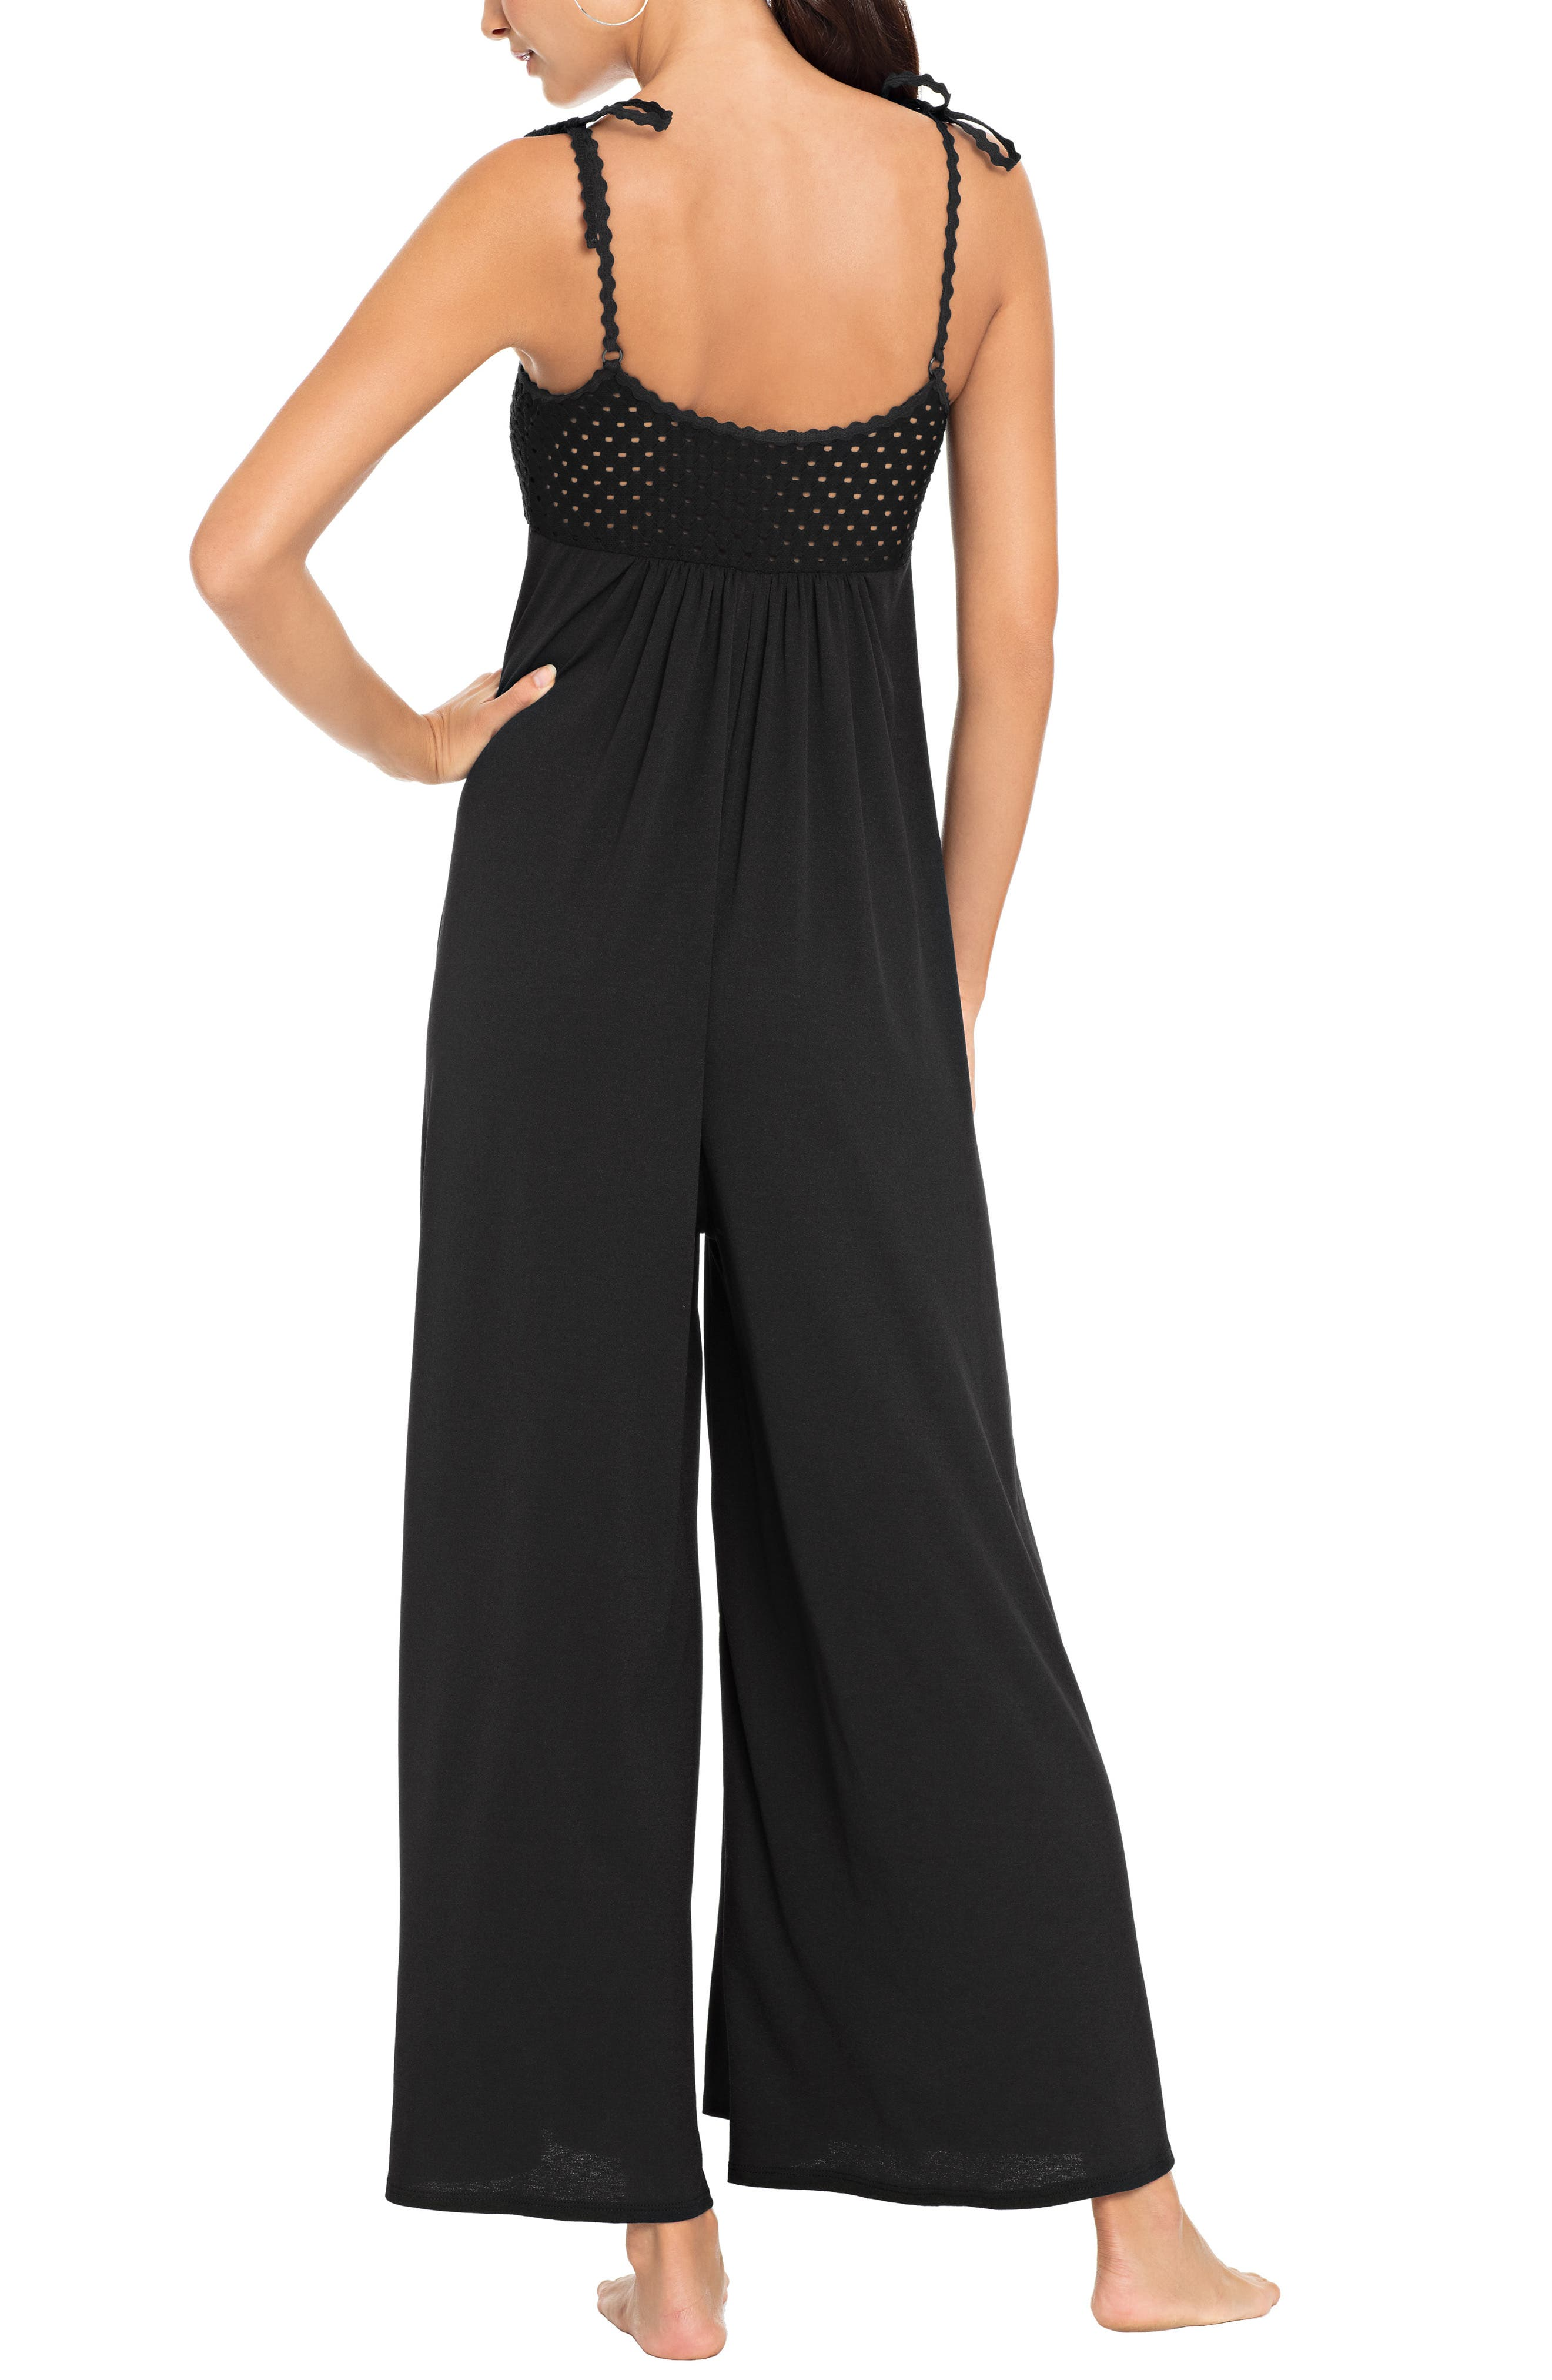 ROBIN PICCONE, Chira Jumpsuit Cover-Up, Alternate thumbnail 2, color, BLACK